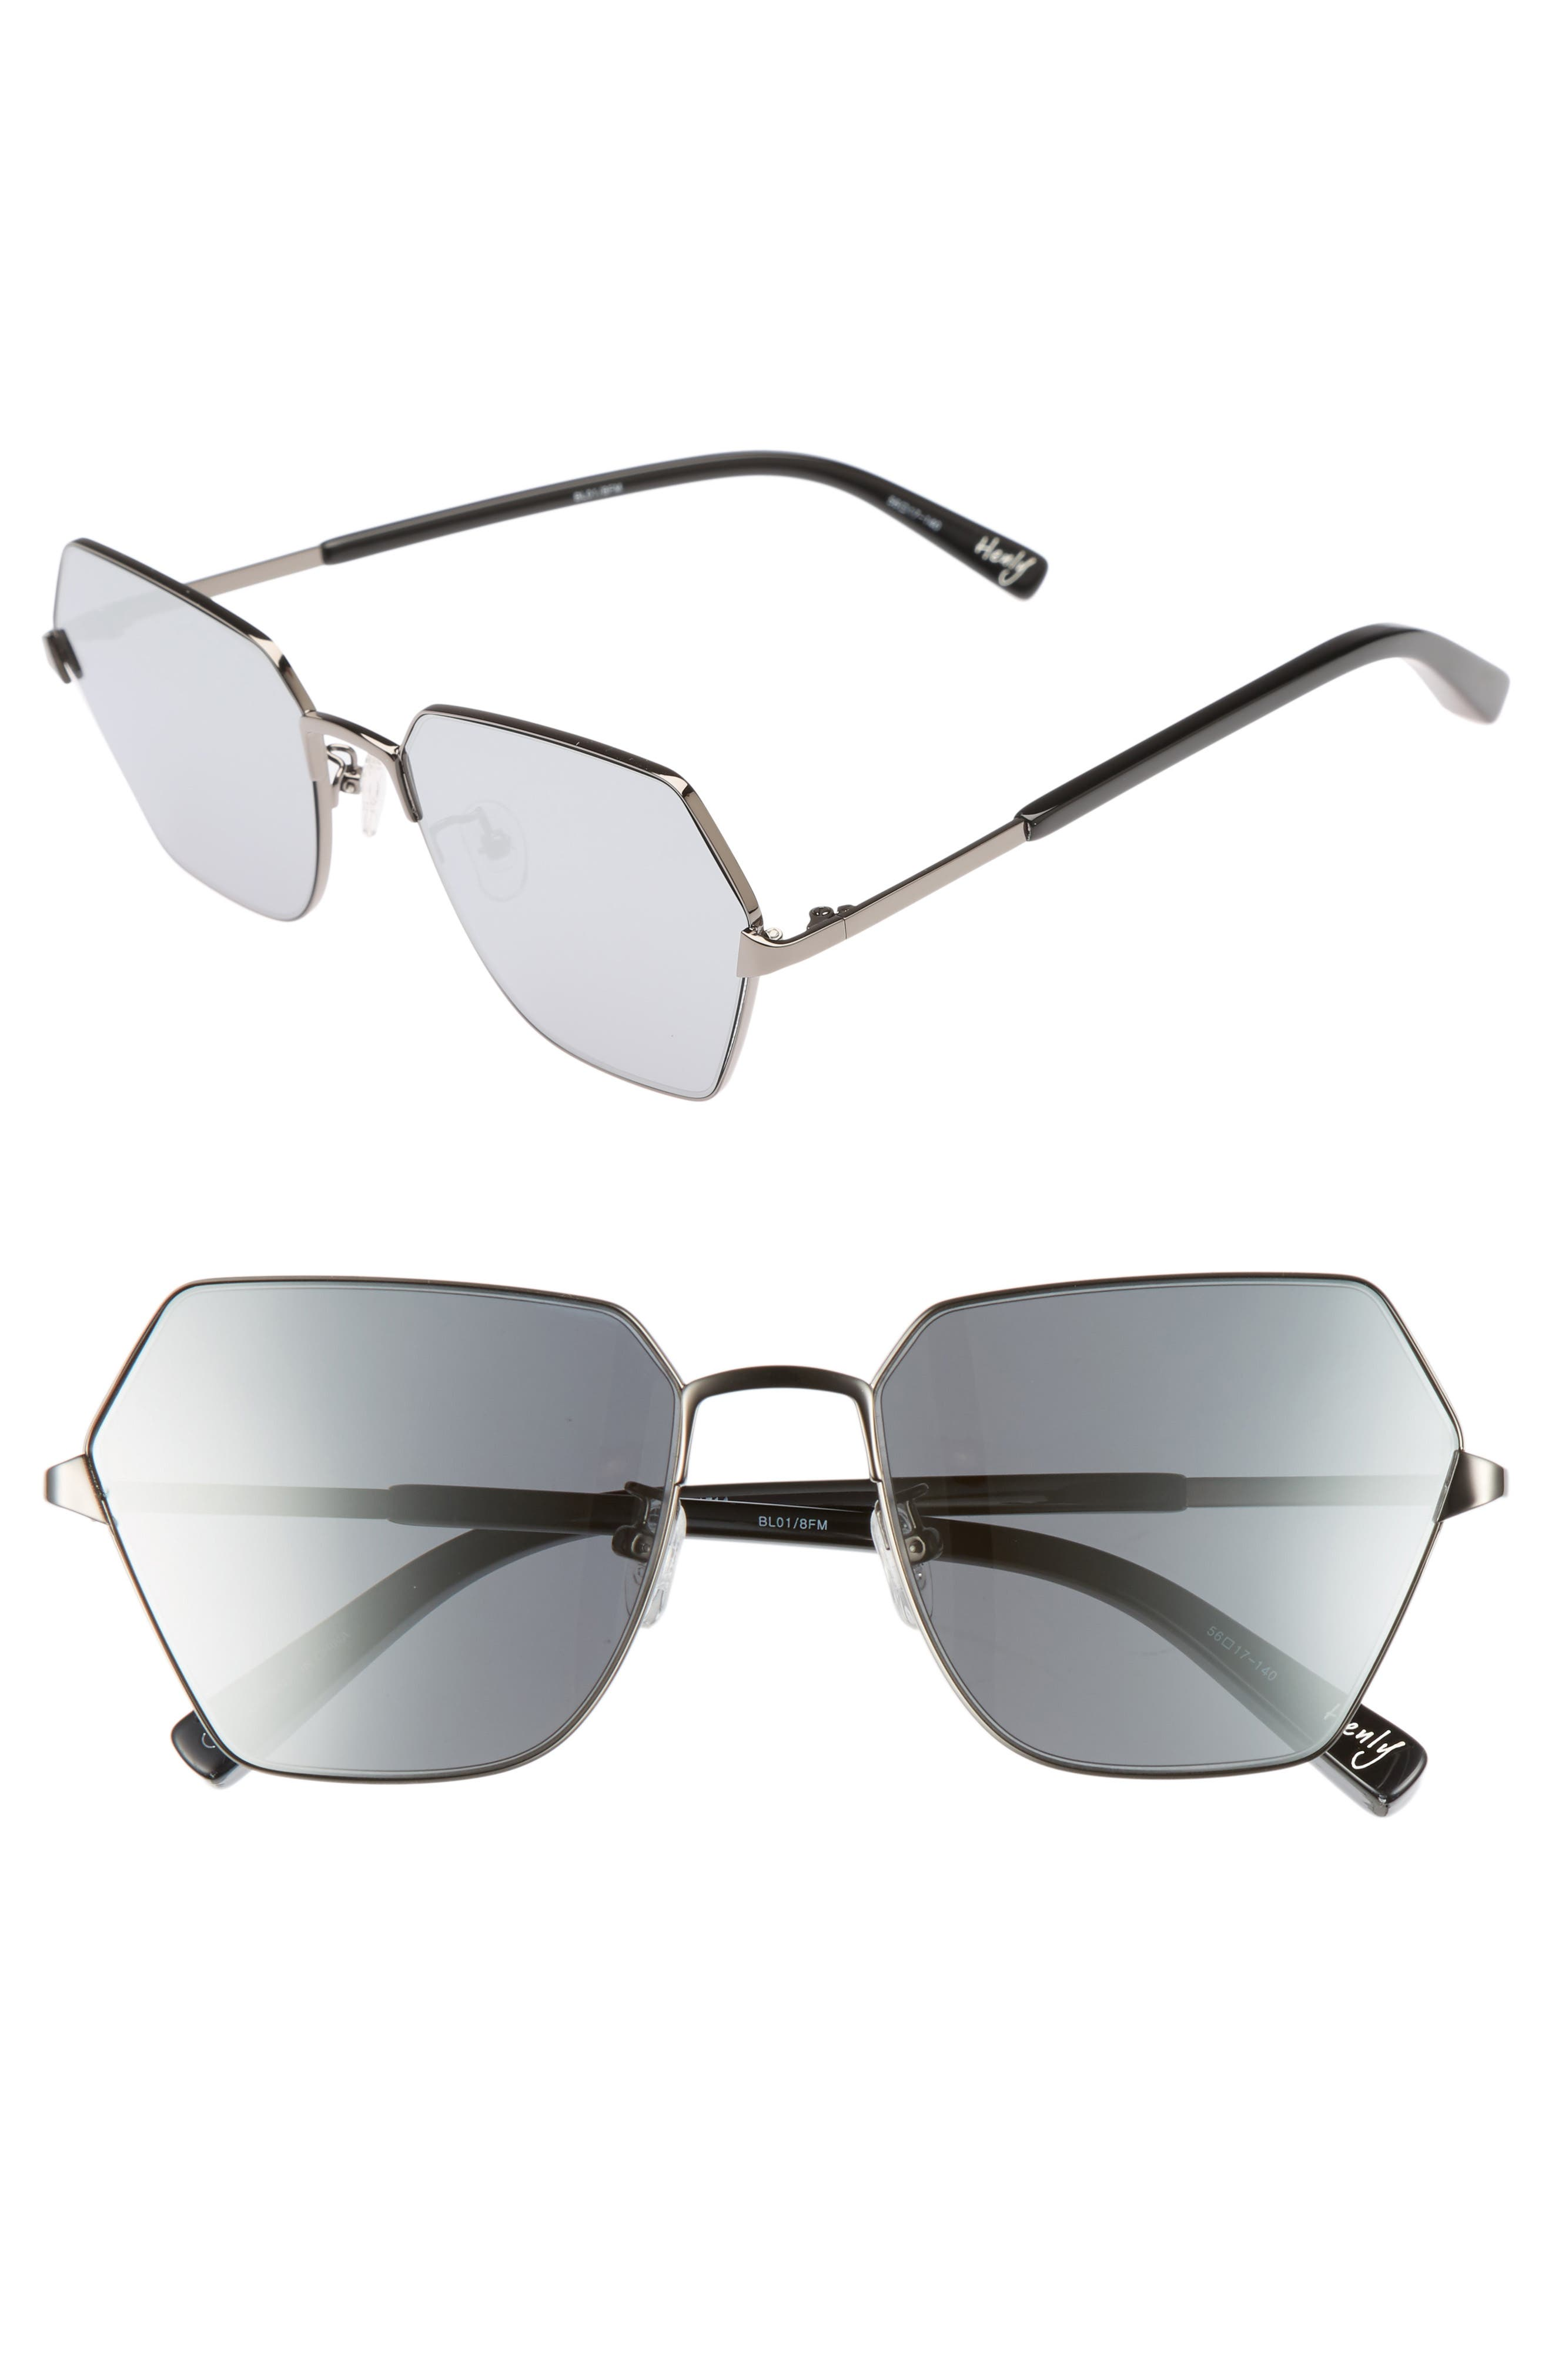 Henly 56mm Sunglasses,                             Main thumbnail 1, color,                             001